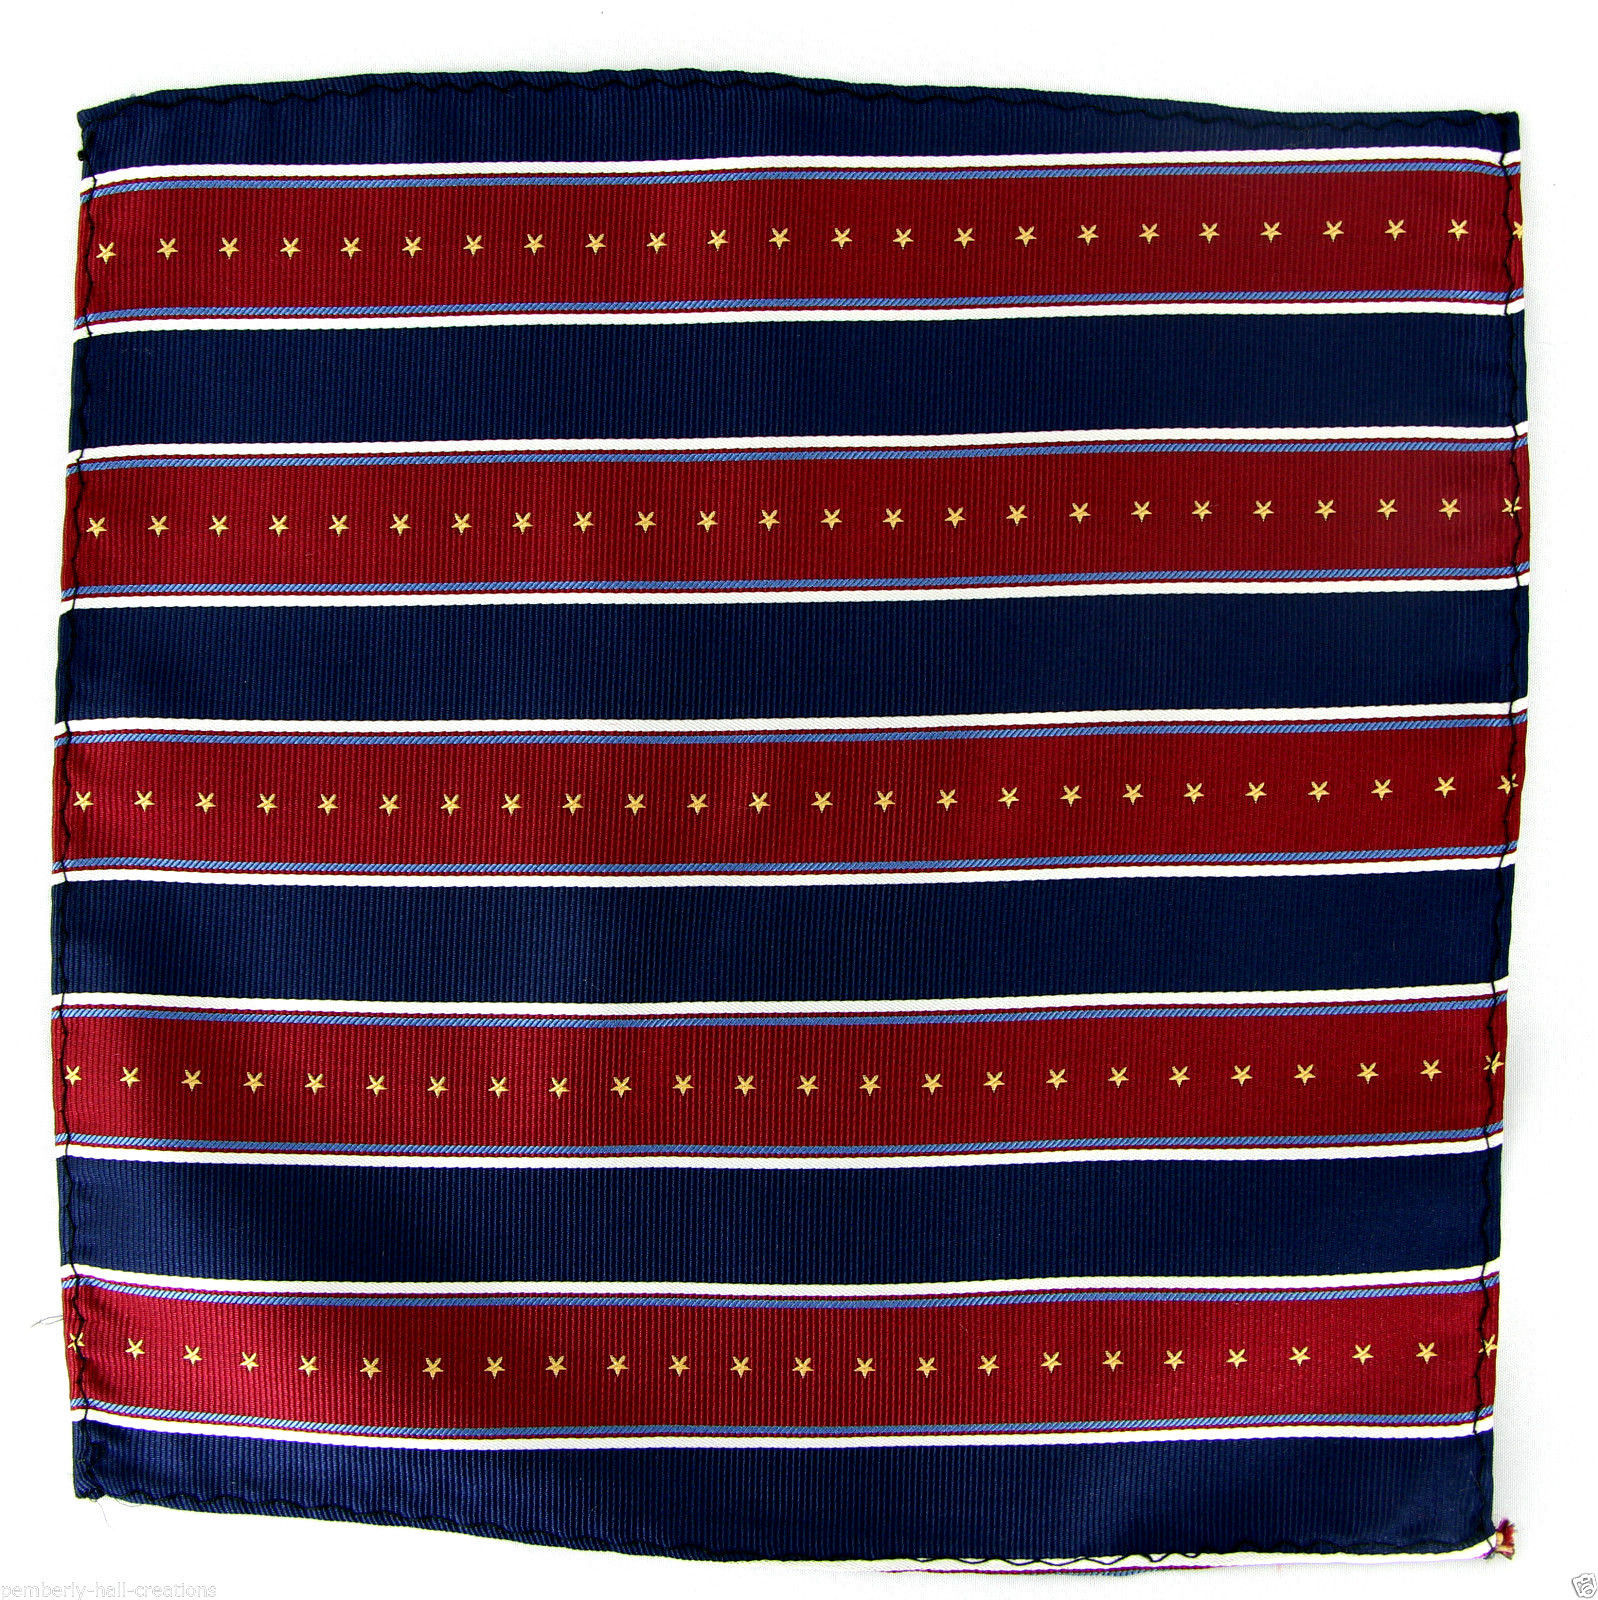 Stars & Stripes Navy Blue & Red Men's Suit Pocket Square Handkerchief Hanky